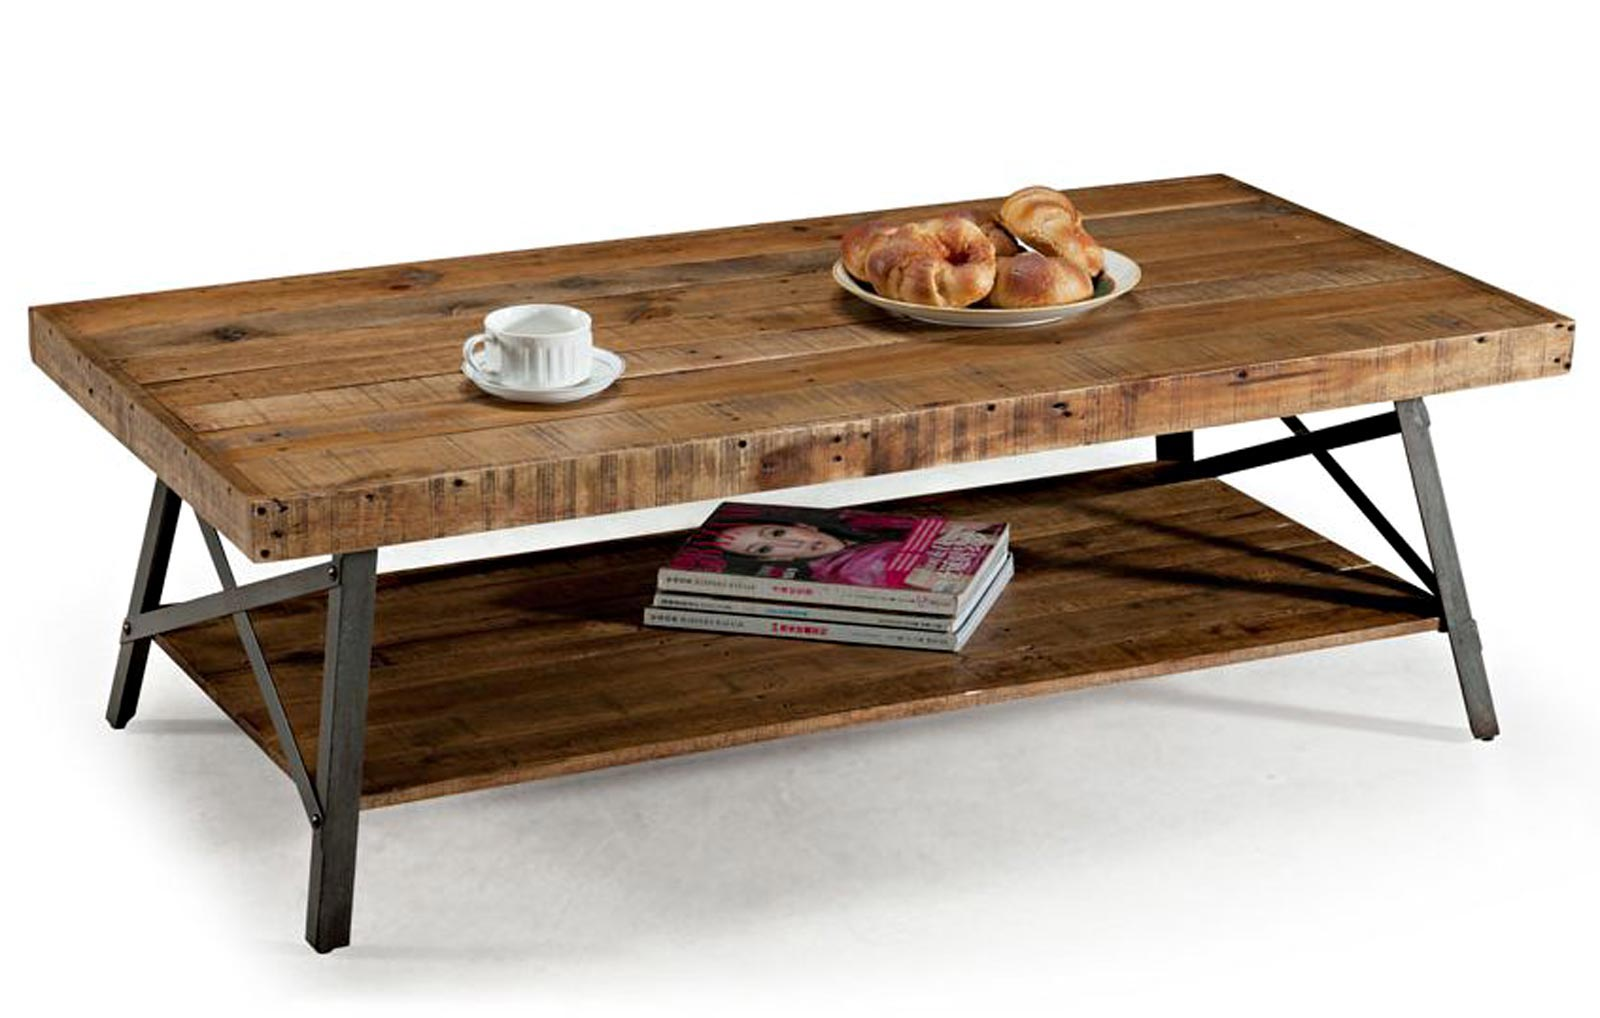 rustic-industrial-reclaimed-wood-iron-metal-coffee-cocktail-table-Rustic-Iron-Coffee-Table (Image 7 of 10)